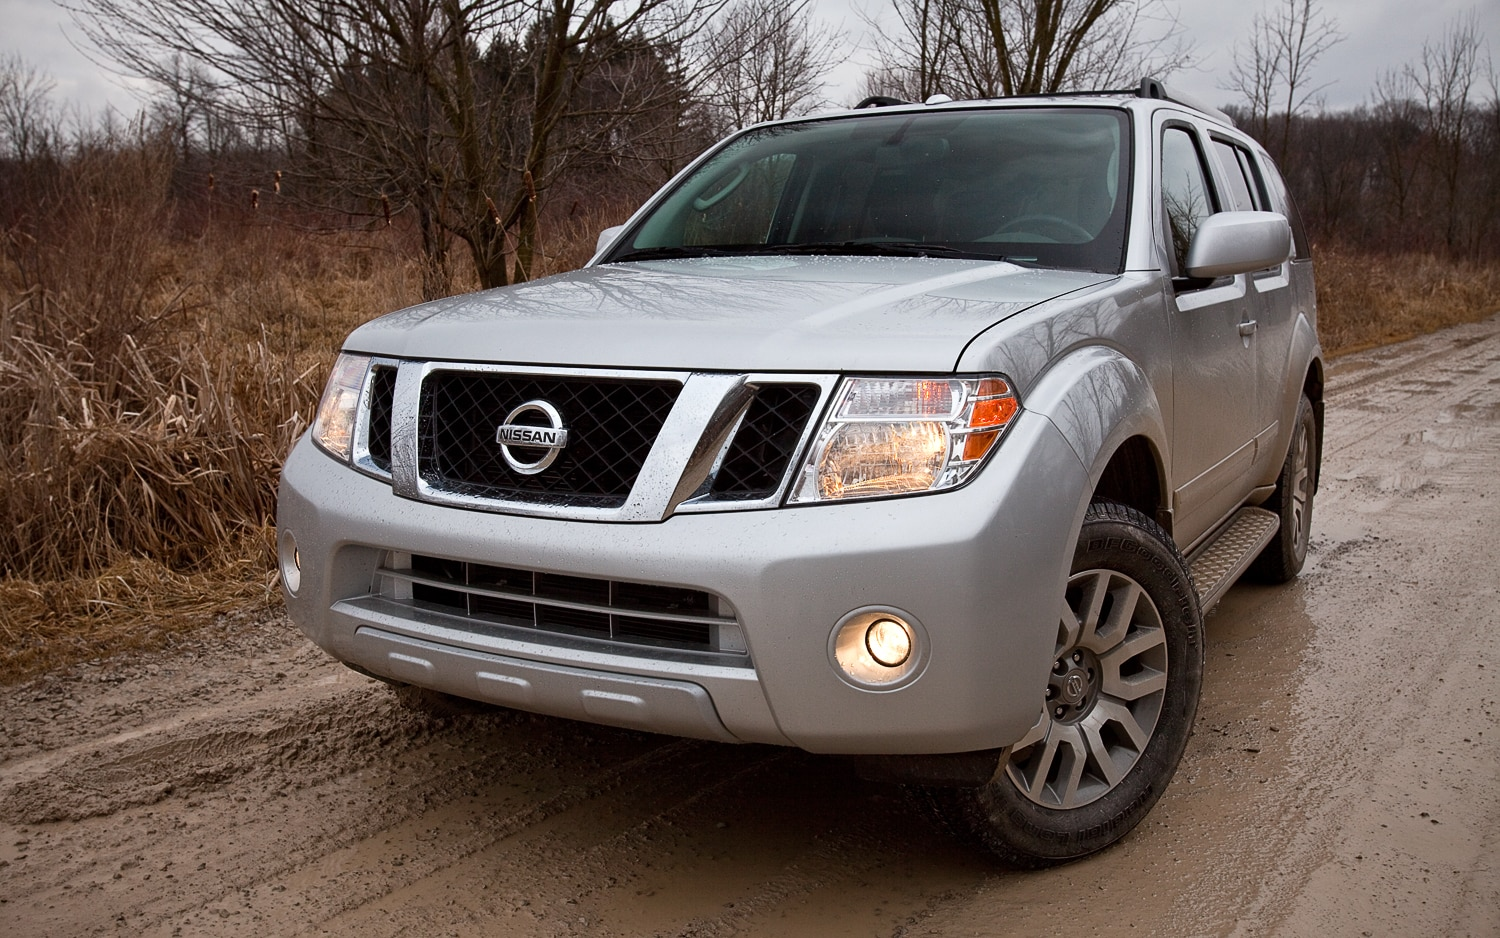 2012 Nissan Pathfinder Le 4x4 Editors Notebook